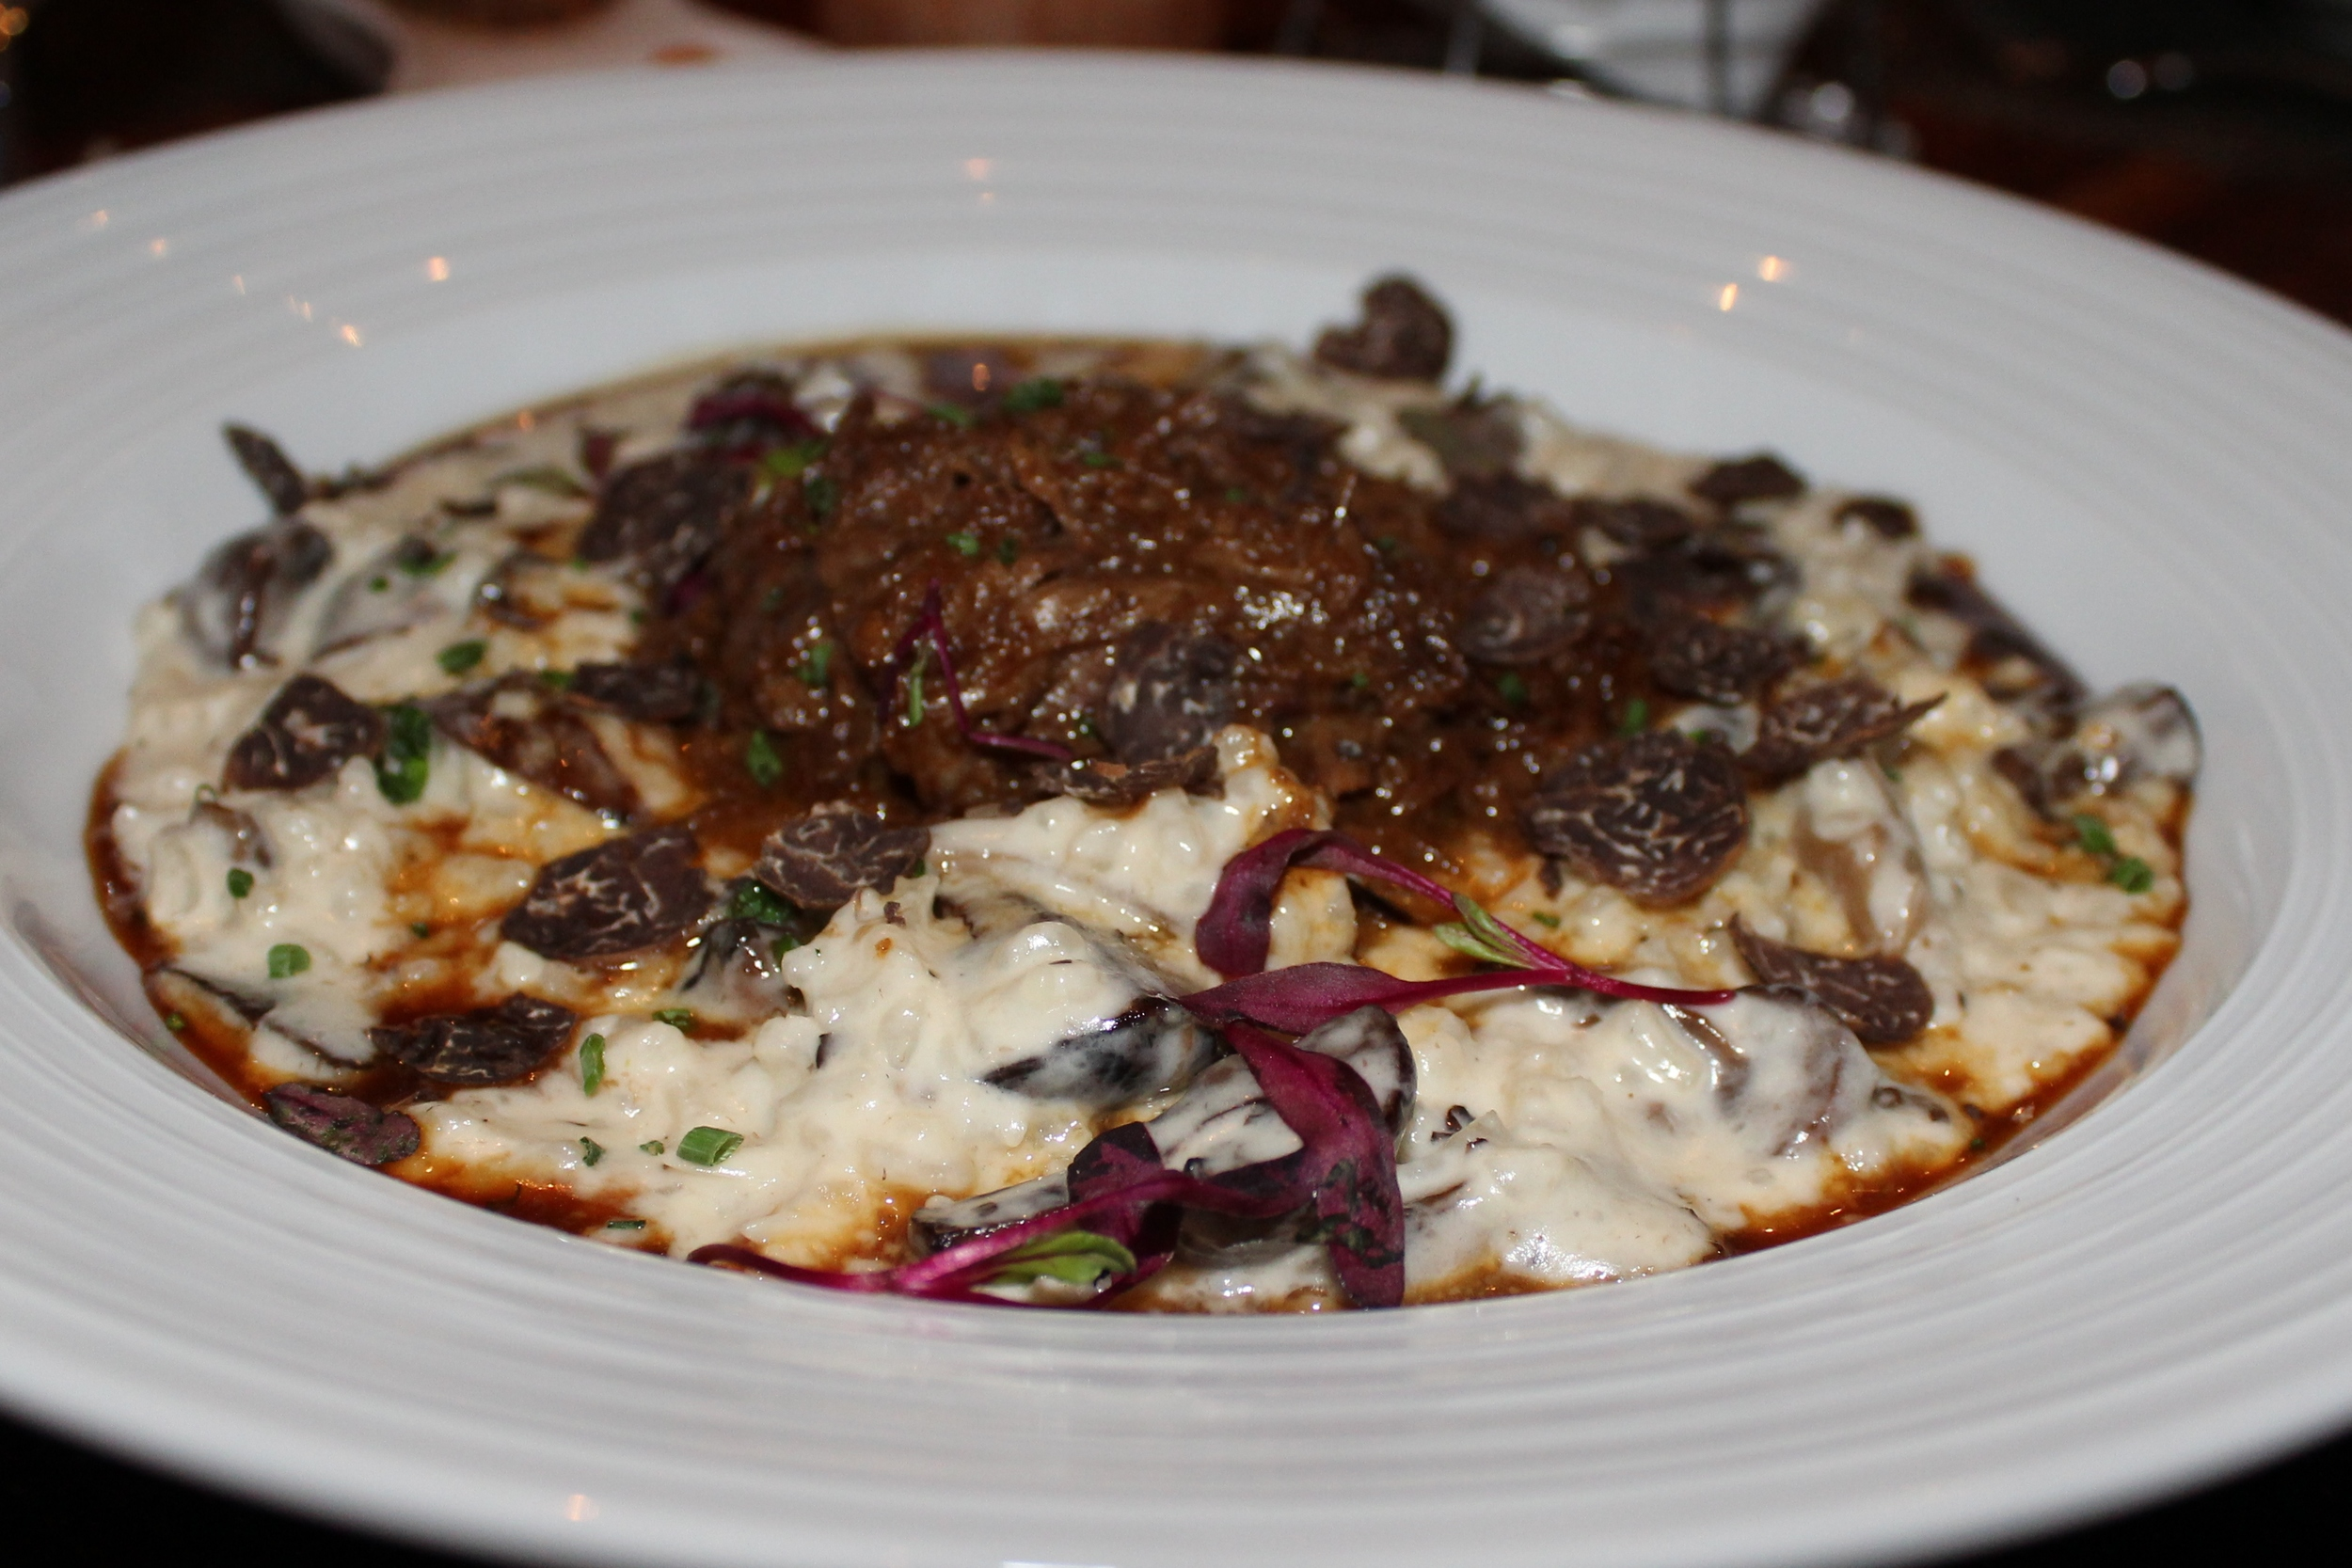 Parmesan risotto with short ribs and truffles.